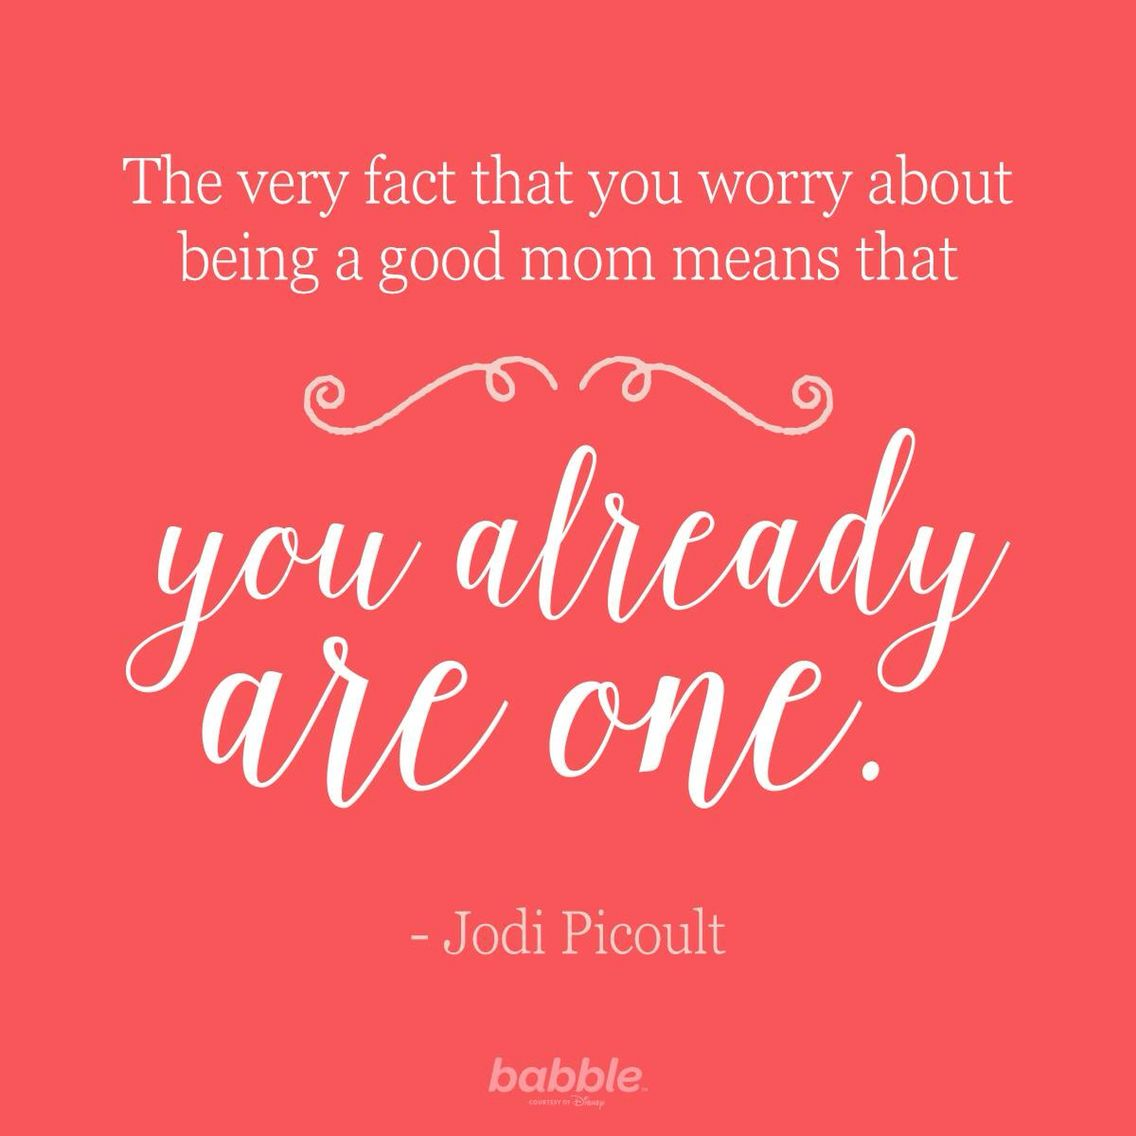 The fact that you worry about being a good Mom means that